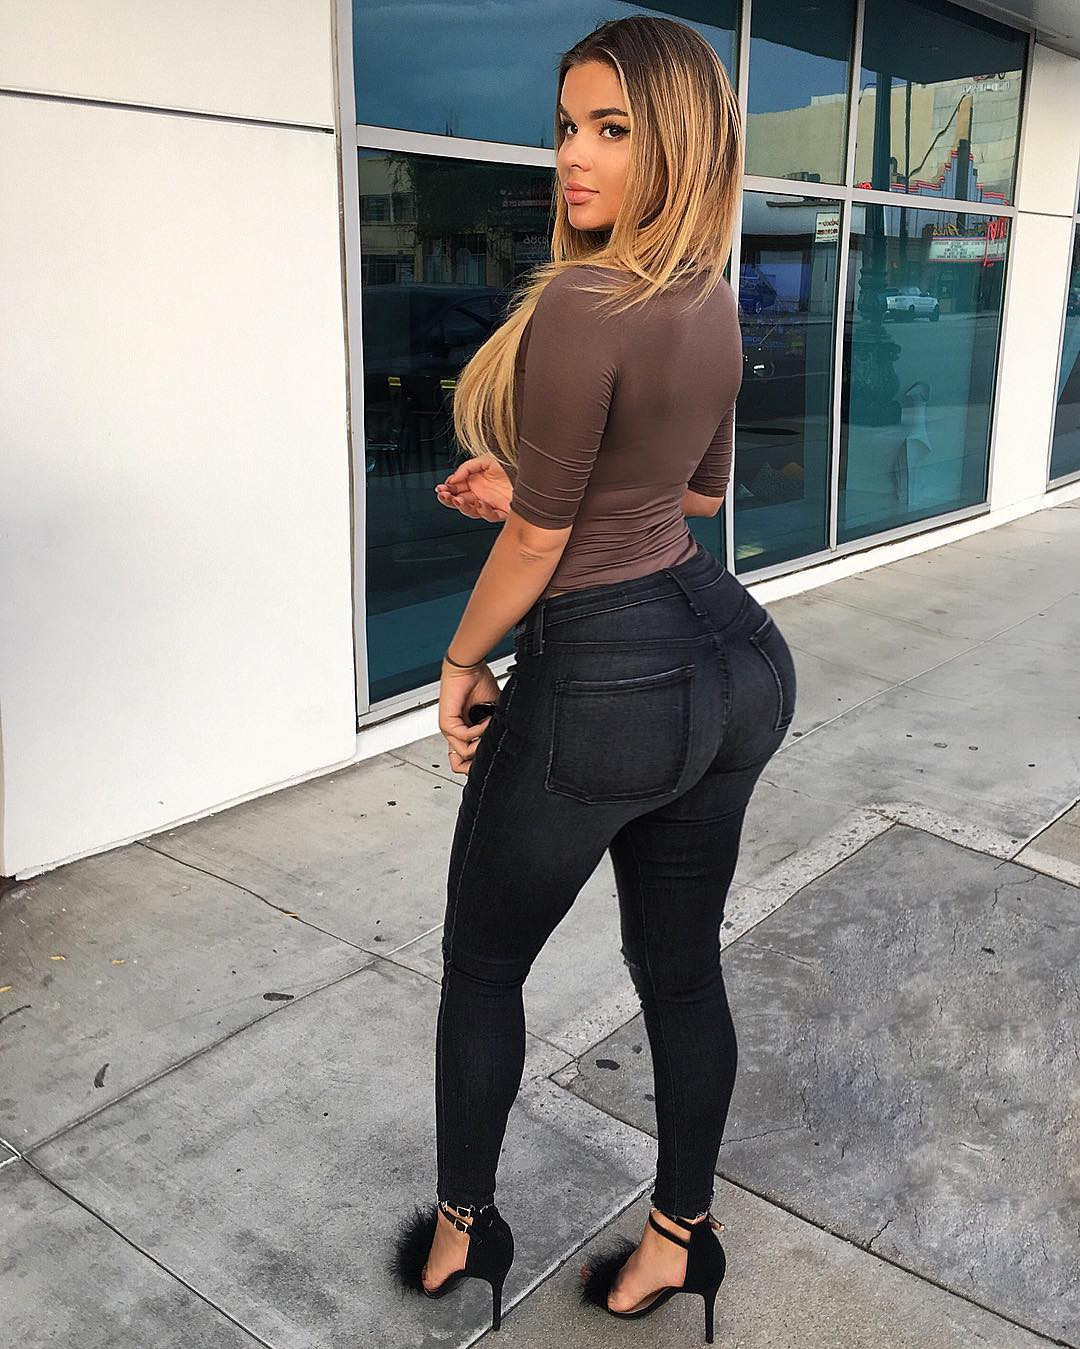 Anastasiya-Kvitko-Wallpapers-Insta-Fit-Bio-15